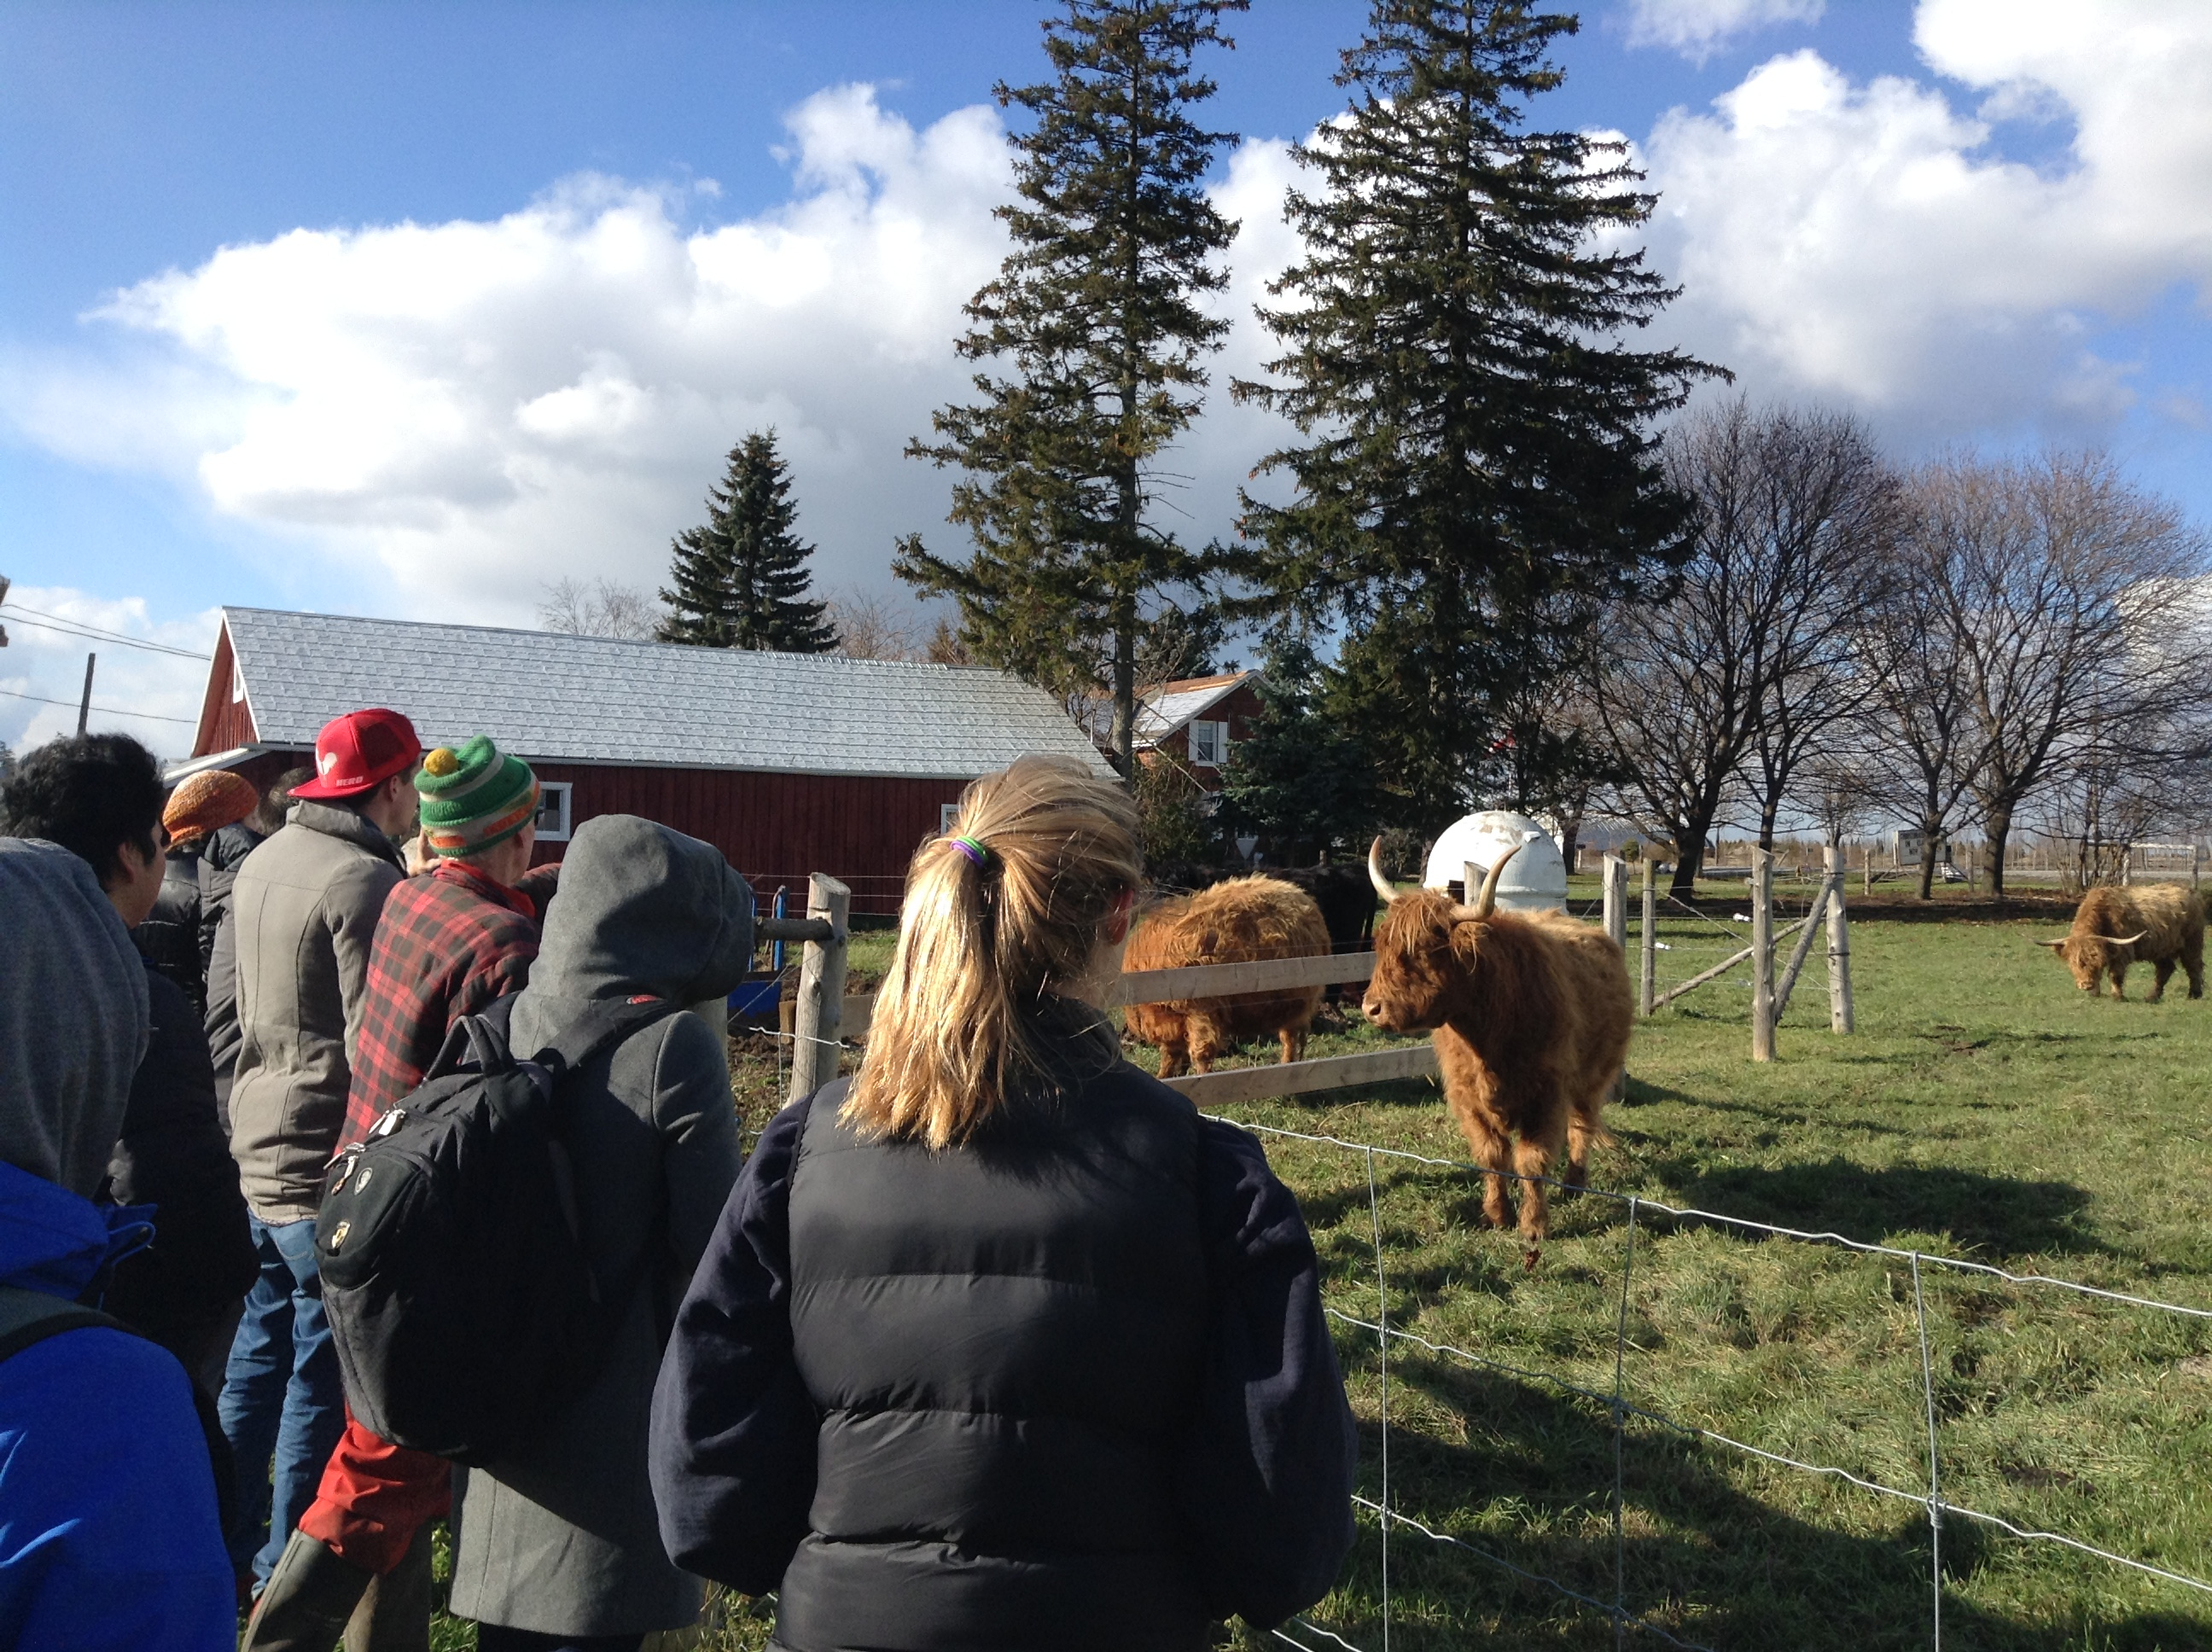 Gallery on the Farm Tour - taken by Josie Di Felice